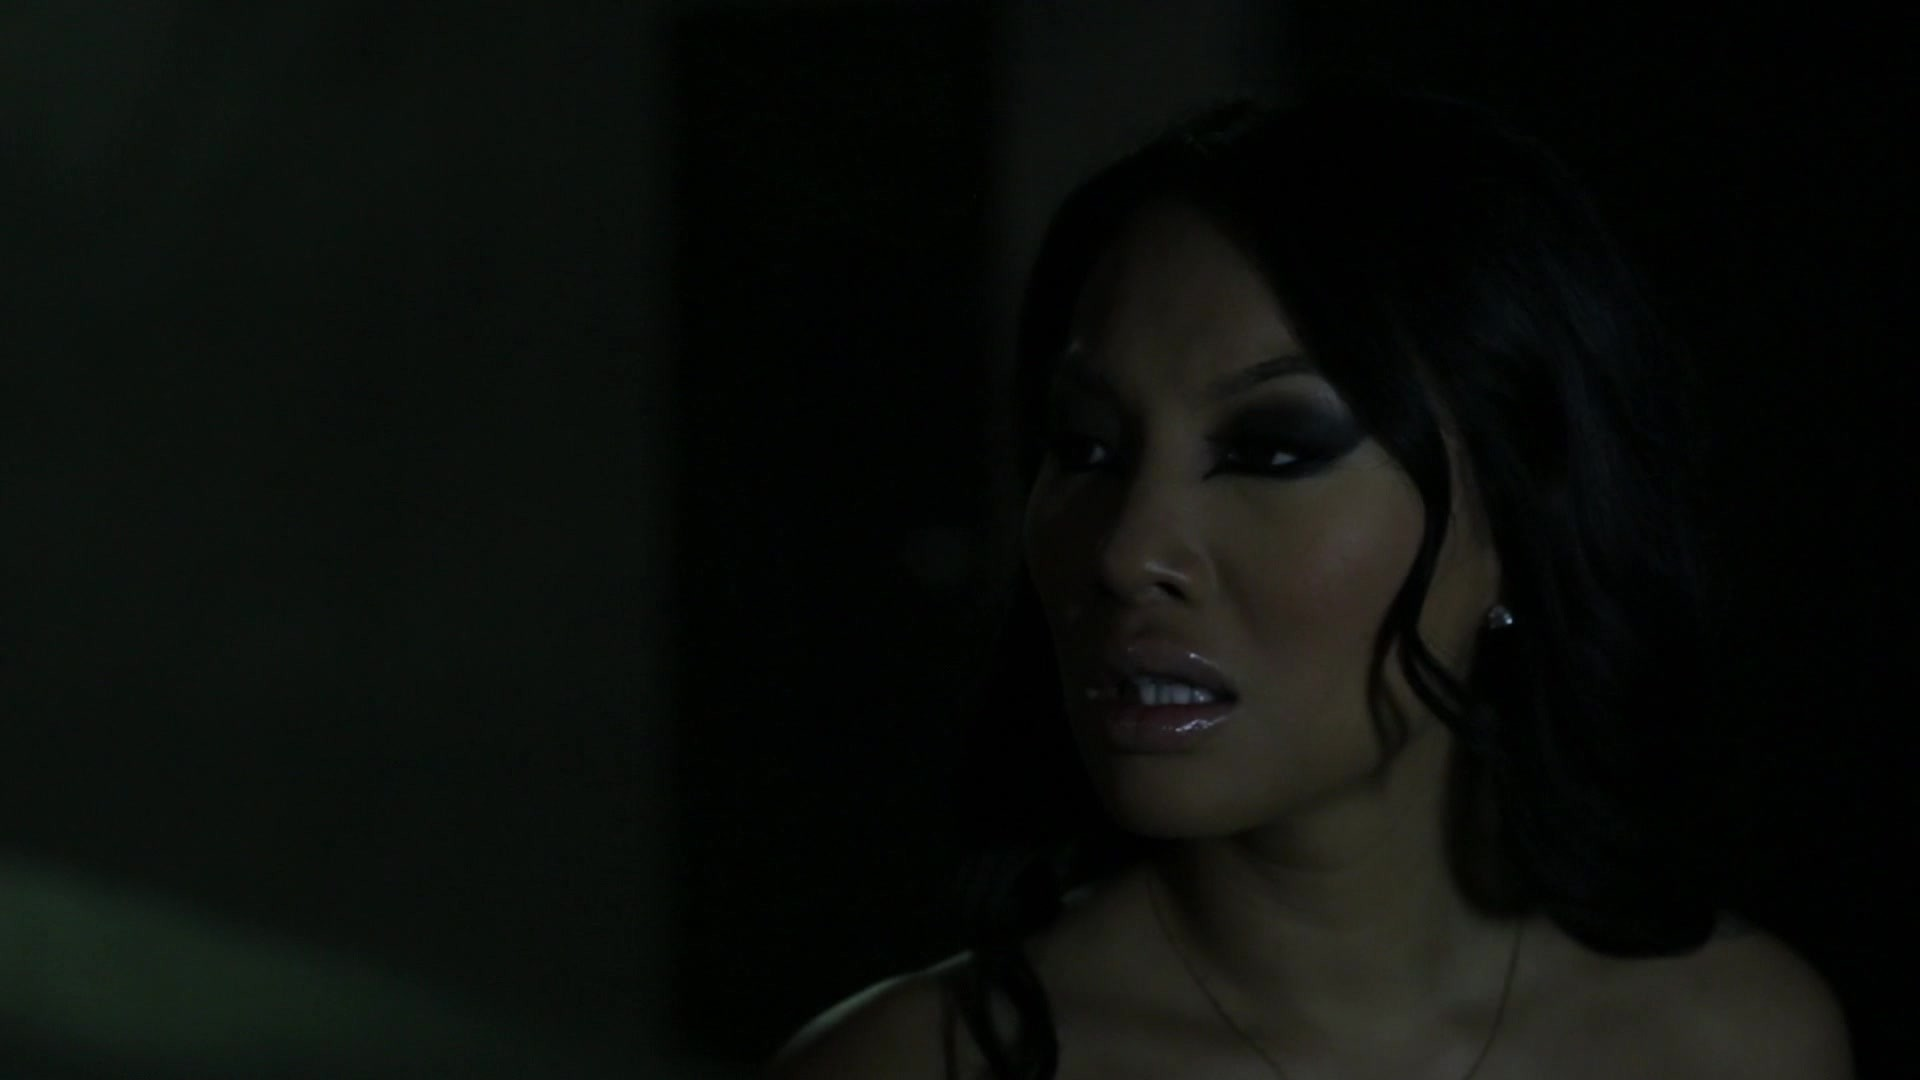 Scene with Asa Akira - image 5 out of 19